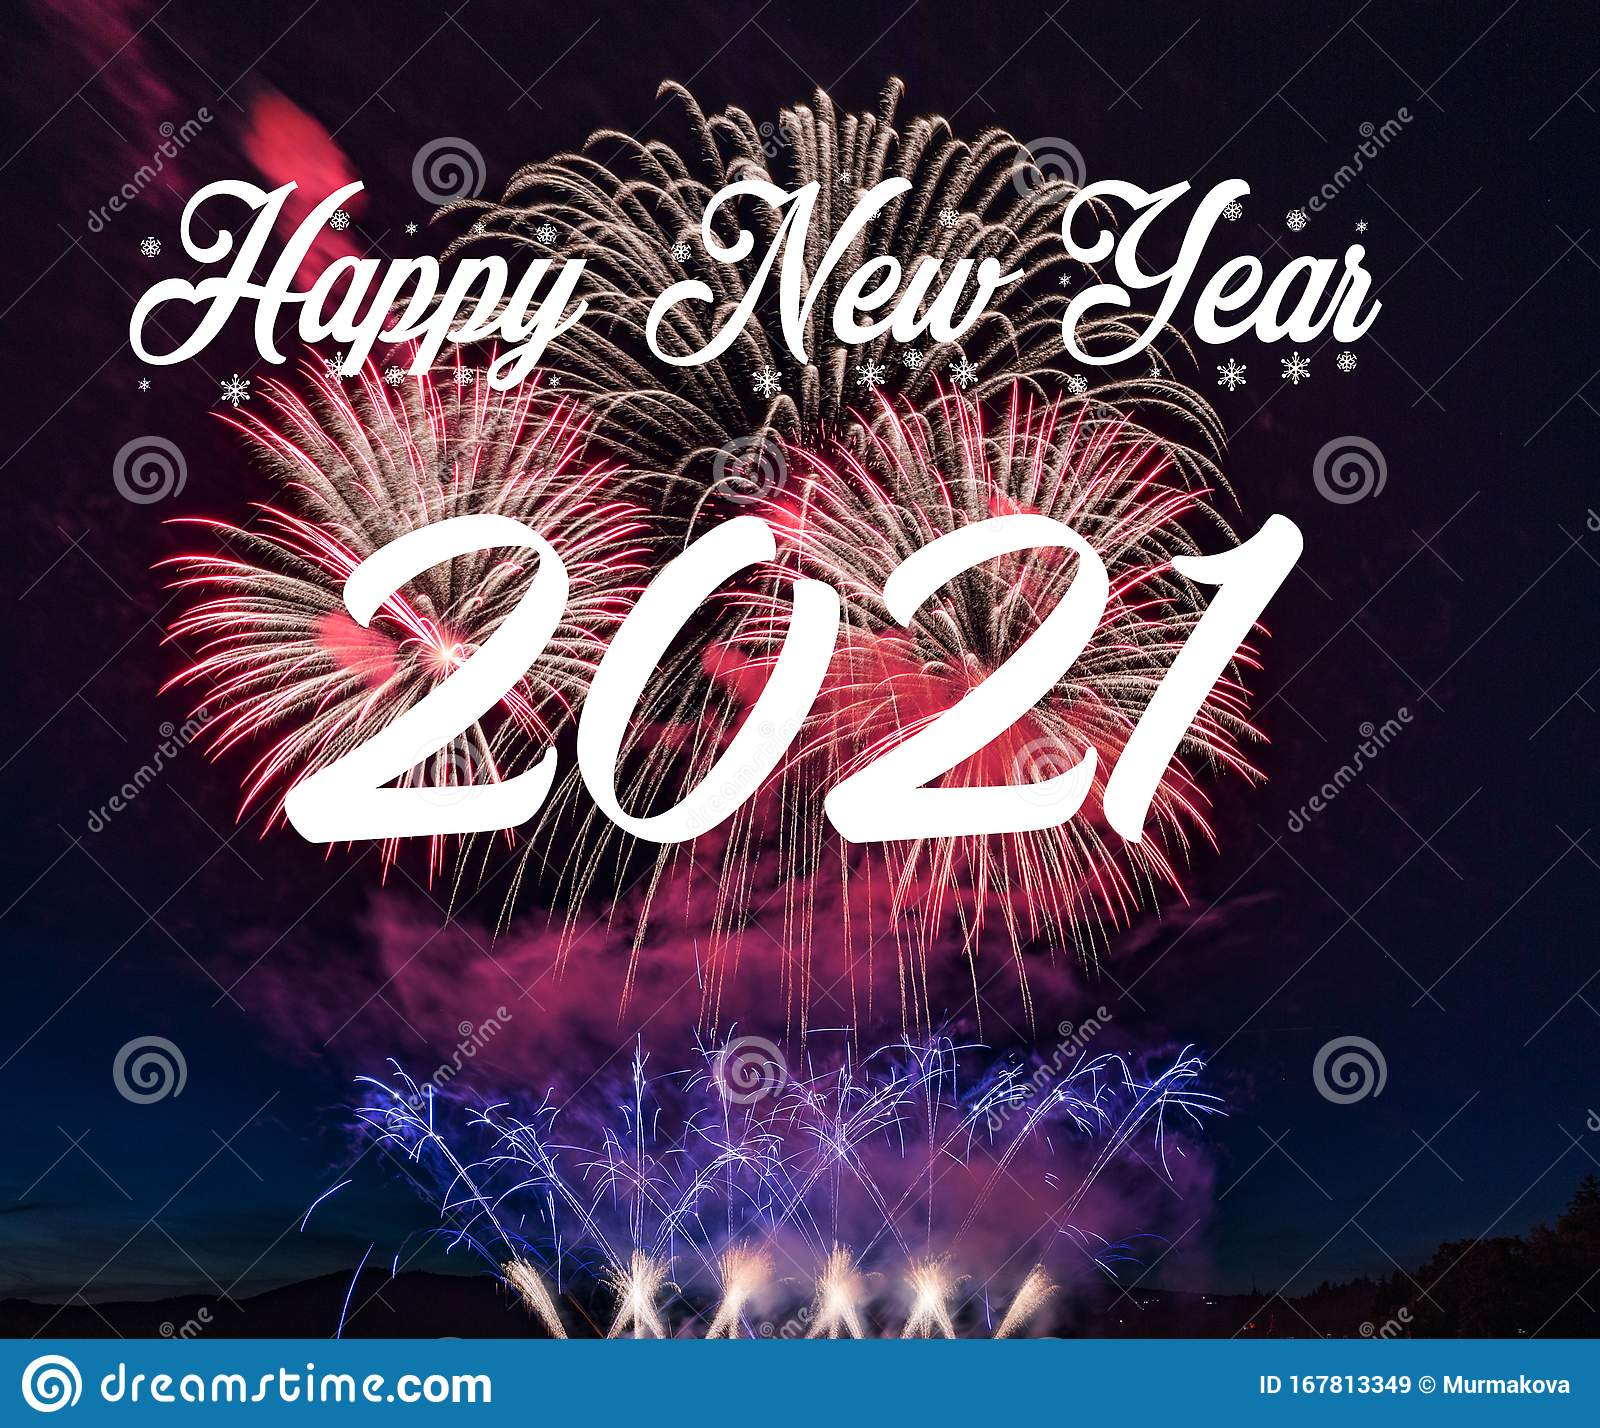 Download Happy 2021 New Year Images